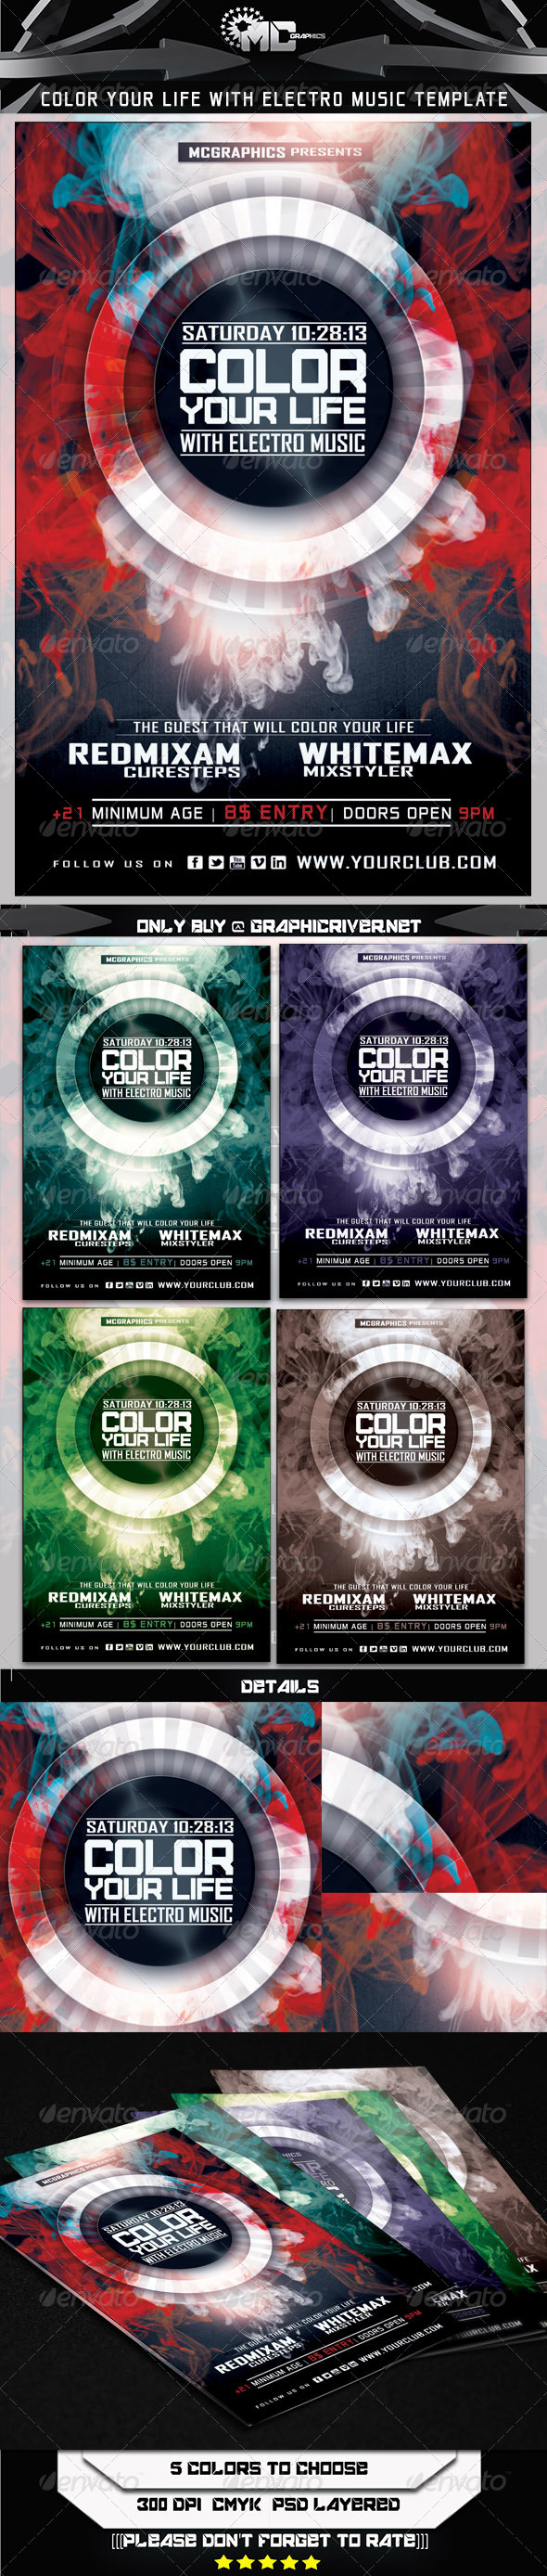 Color Your Life With Electro Music Flyer Template - Events Flyers